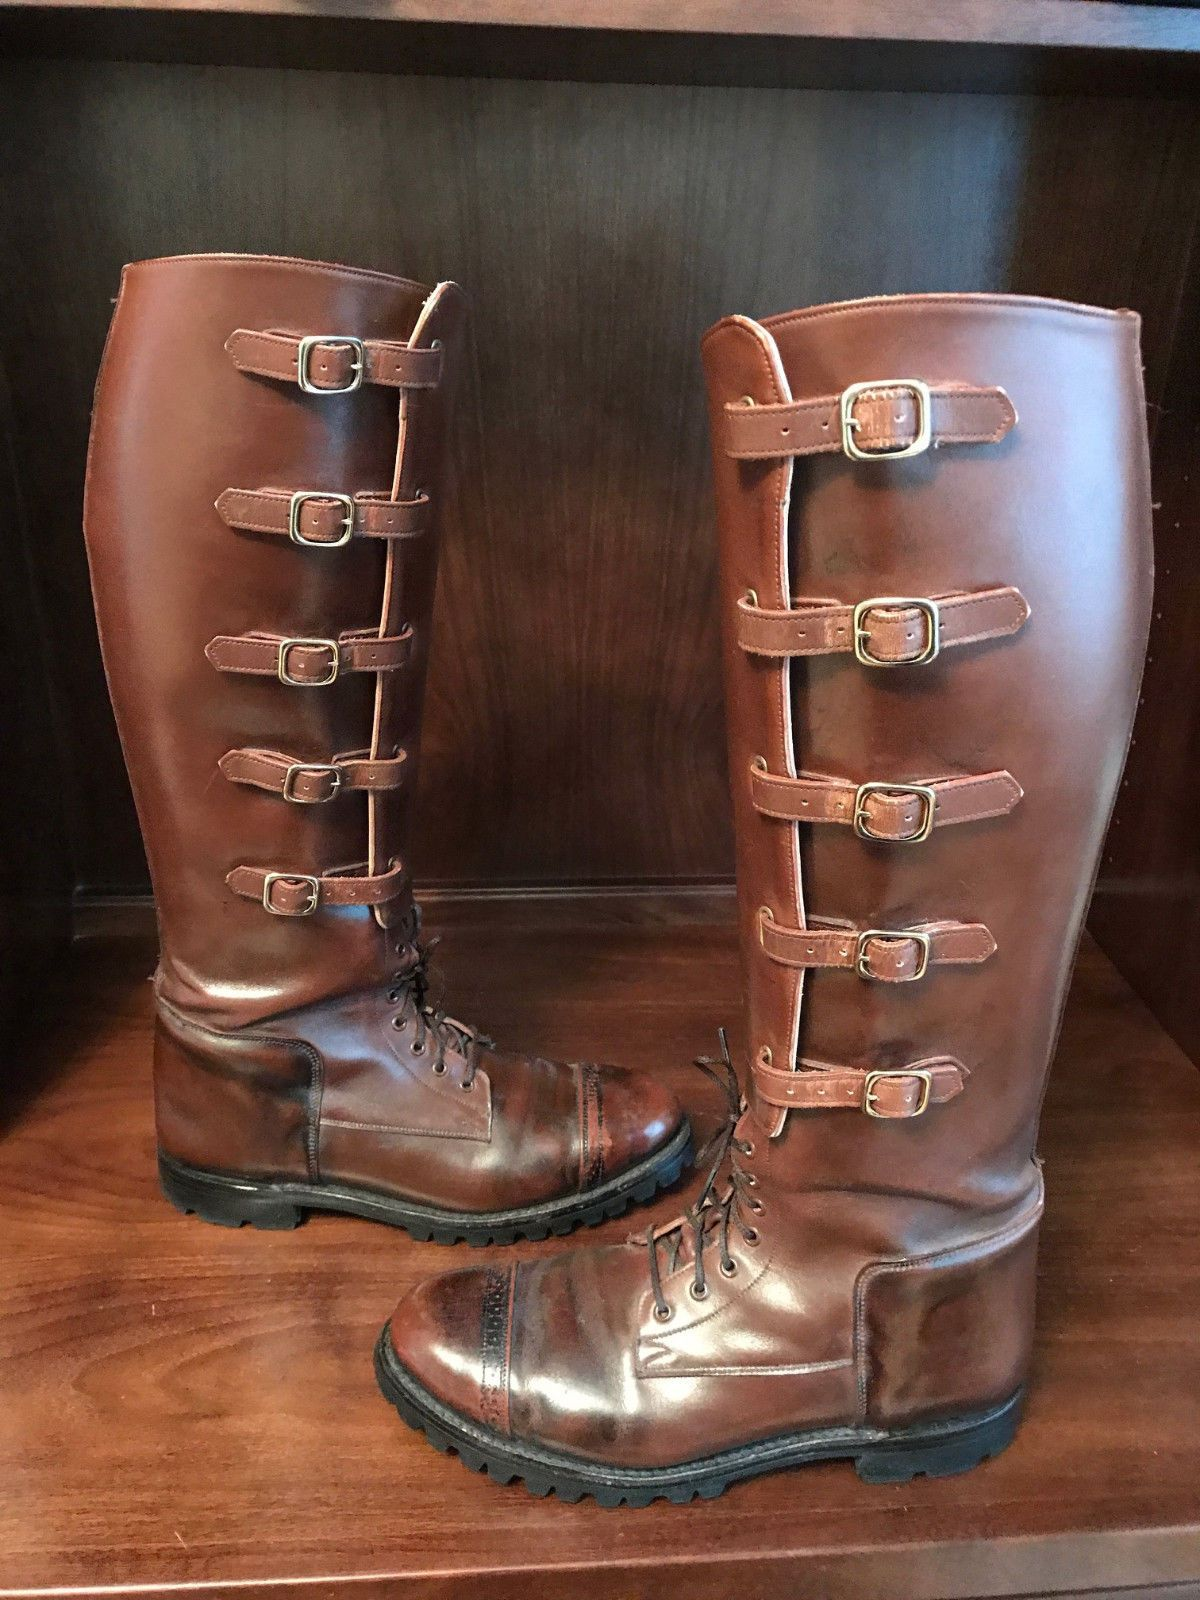 Dehner Tall Leather Cavalry Style Five Buckle Field Riding